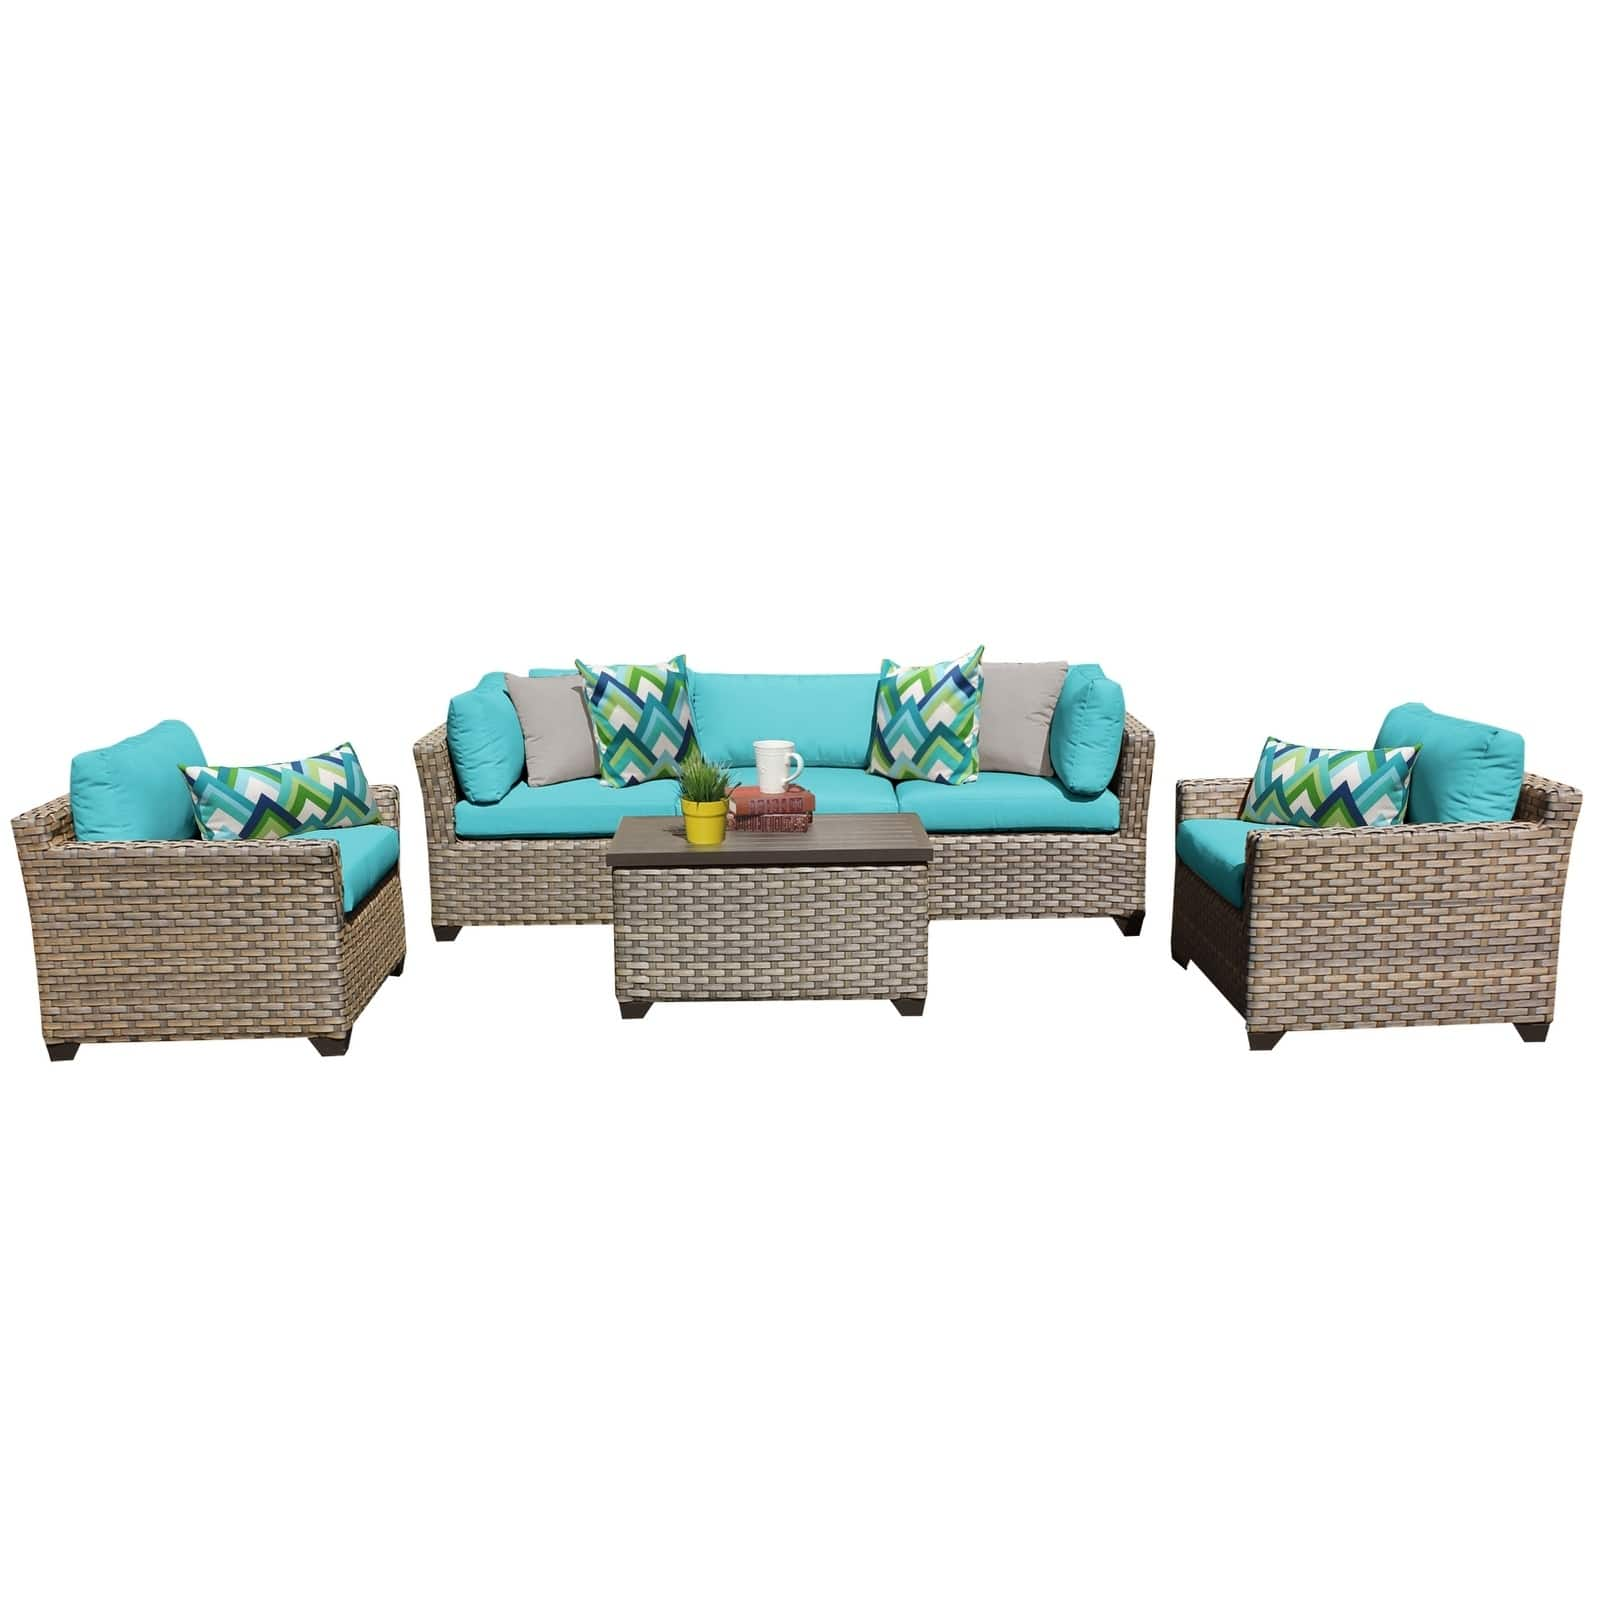 Outdoor Patio Furniture Home Goods: Buy Outdoor Sofas, Chairs & Sectionals Online At Overstock